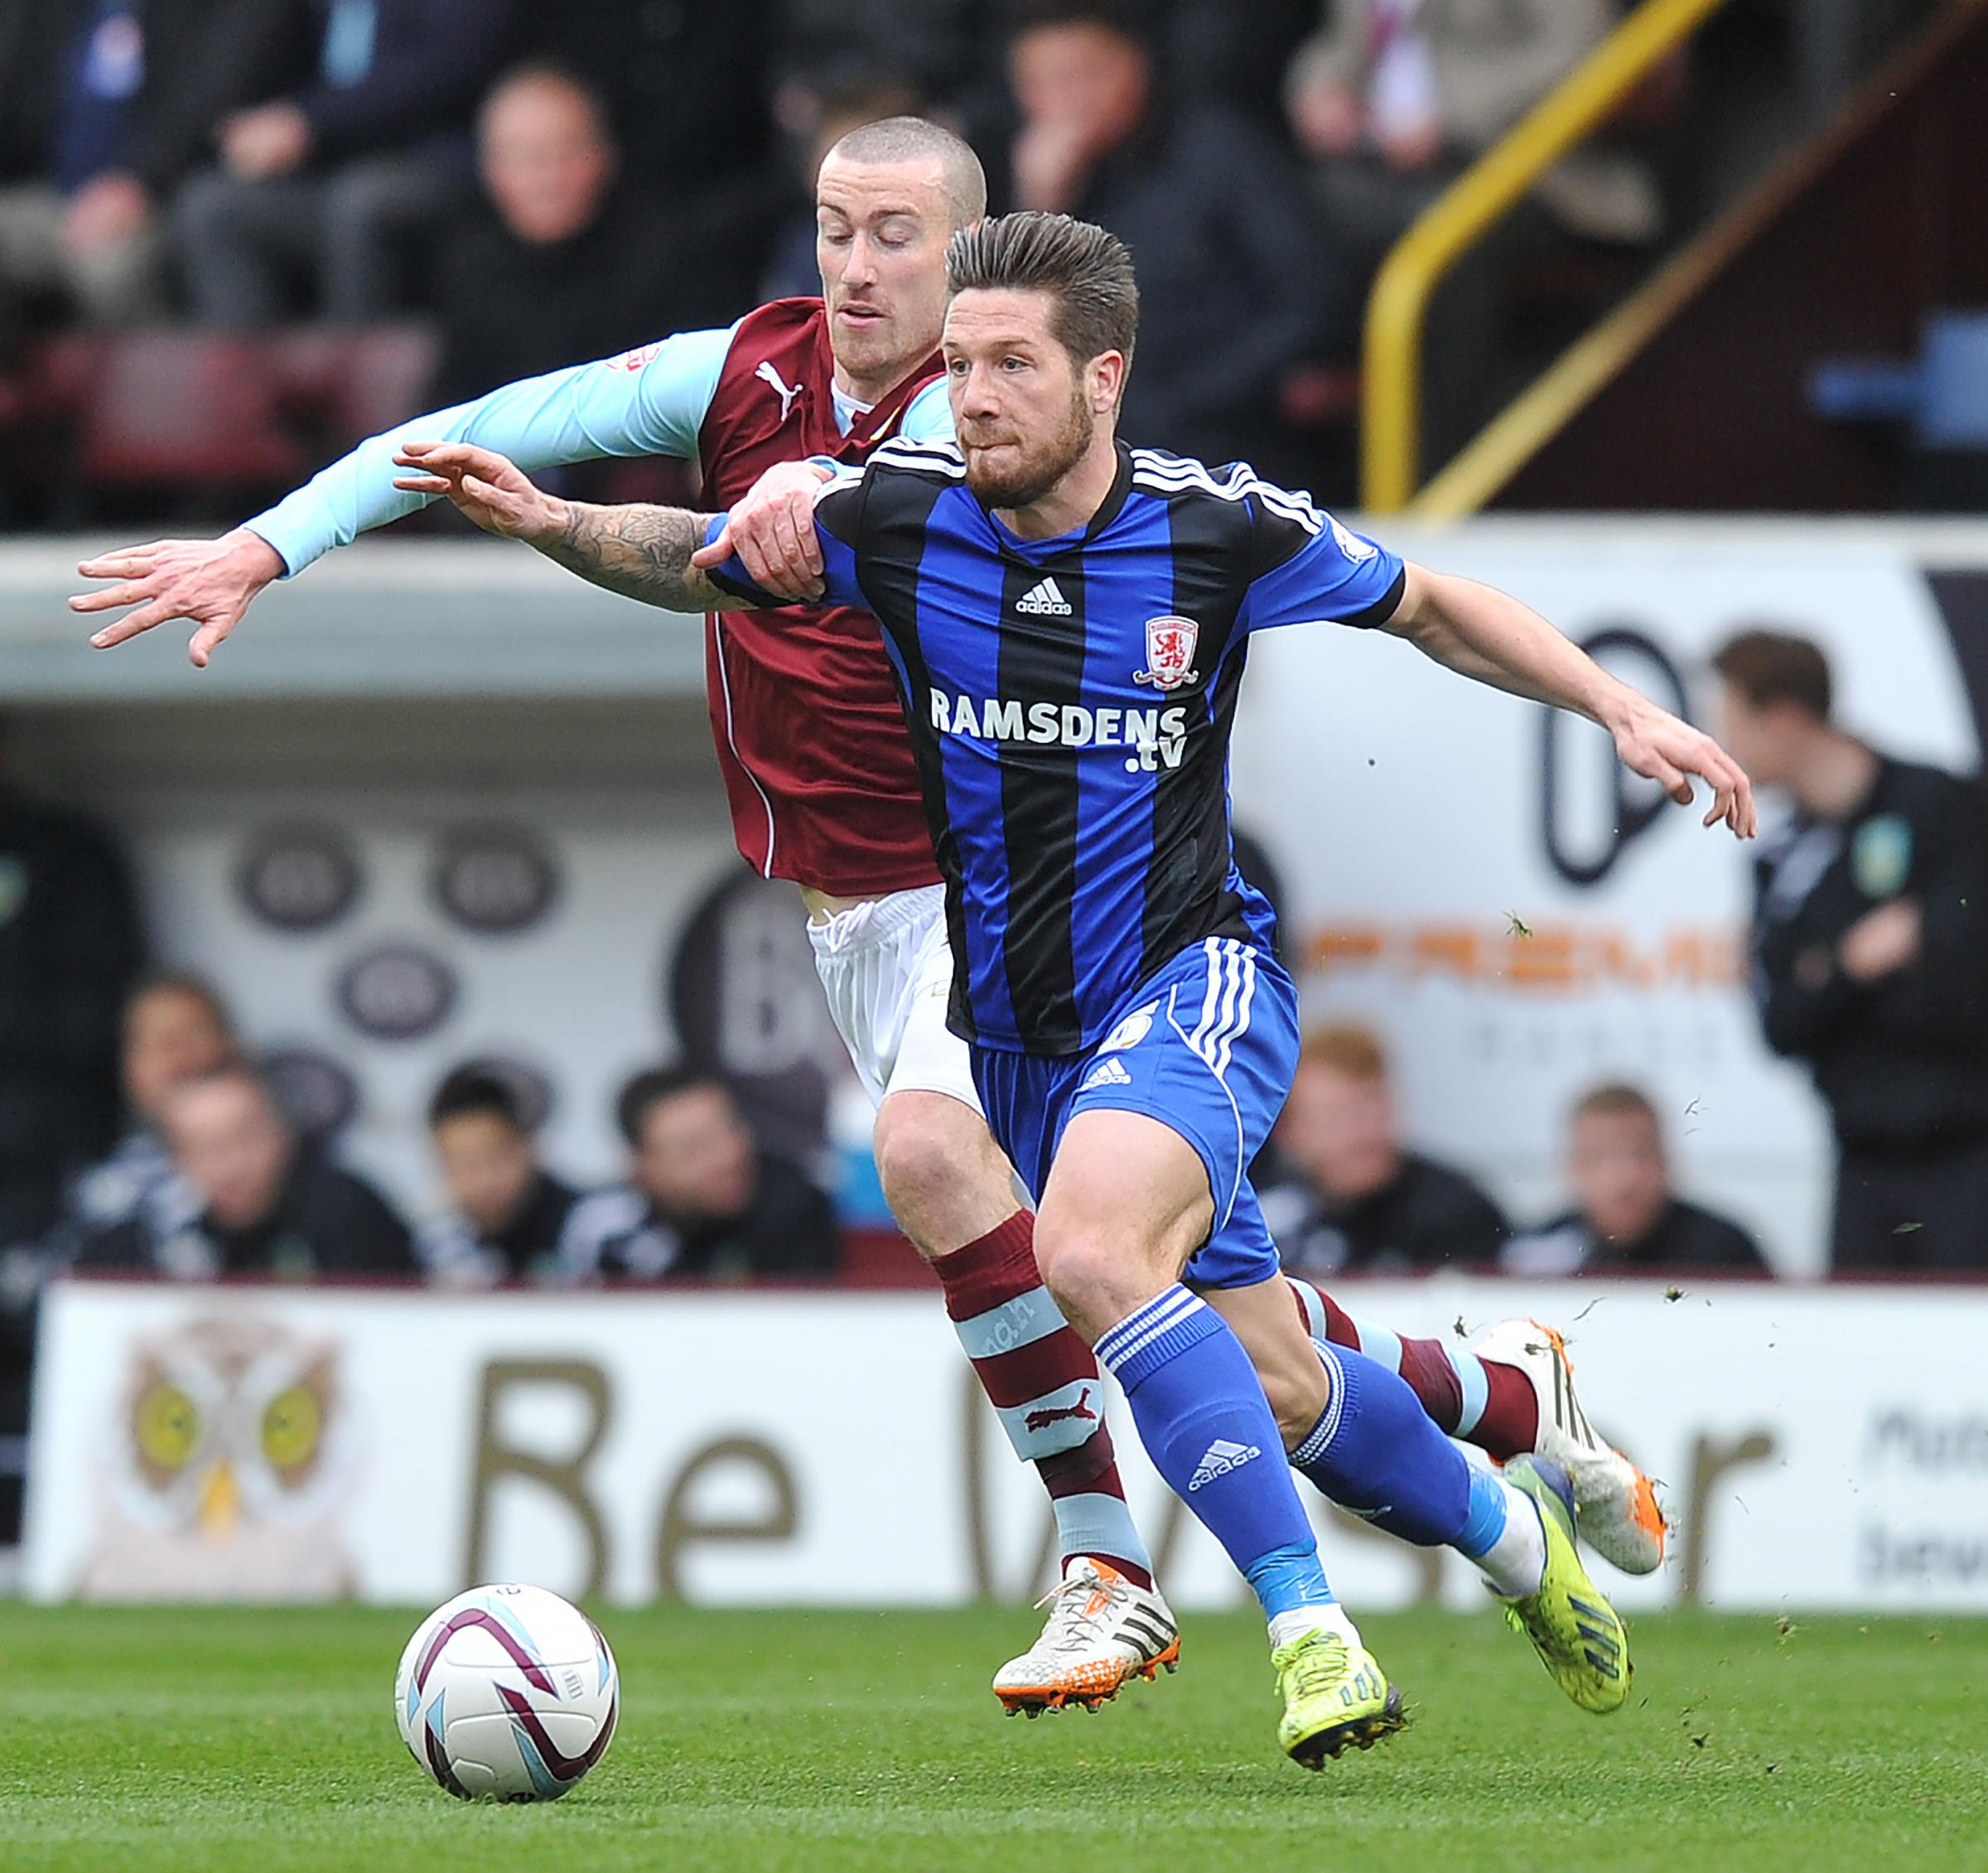 POWERING FORWARD: Middlesbrough goalscorer Jacob Butterfield is chased down by Burnley's David Jones